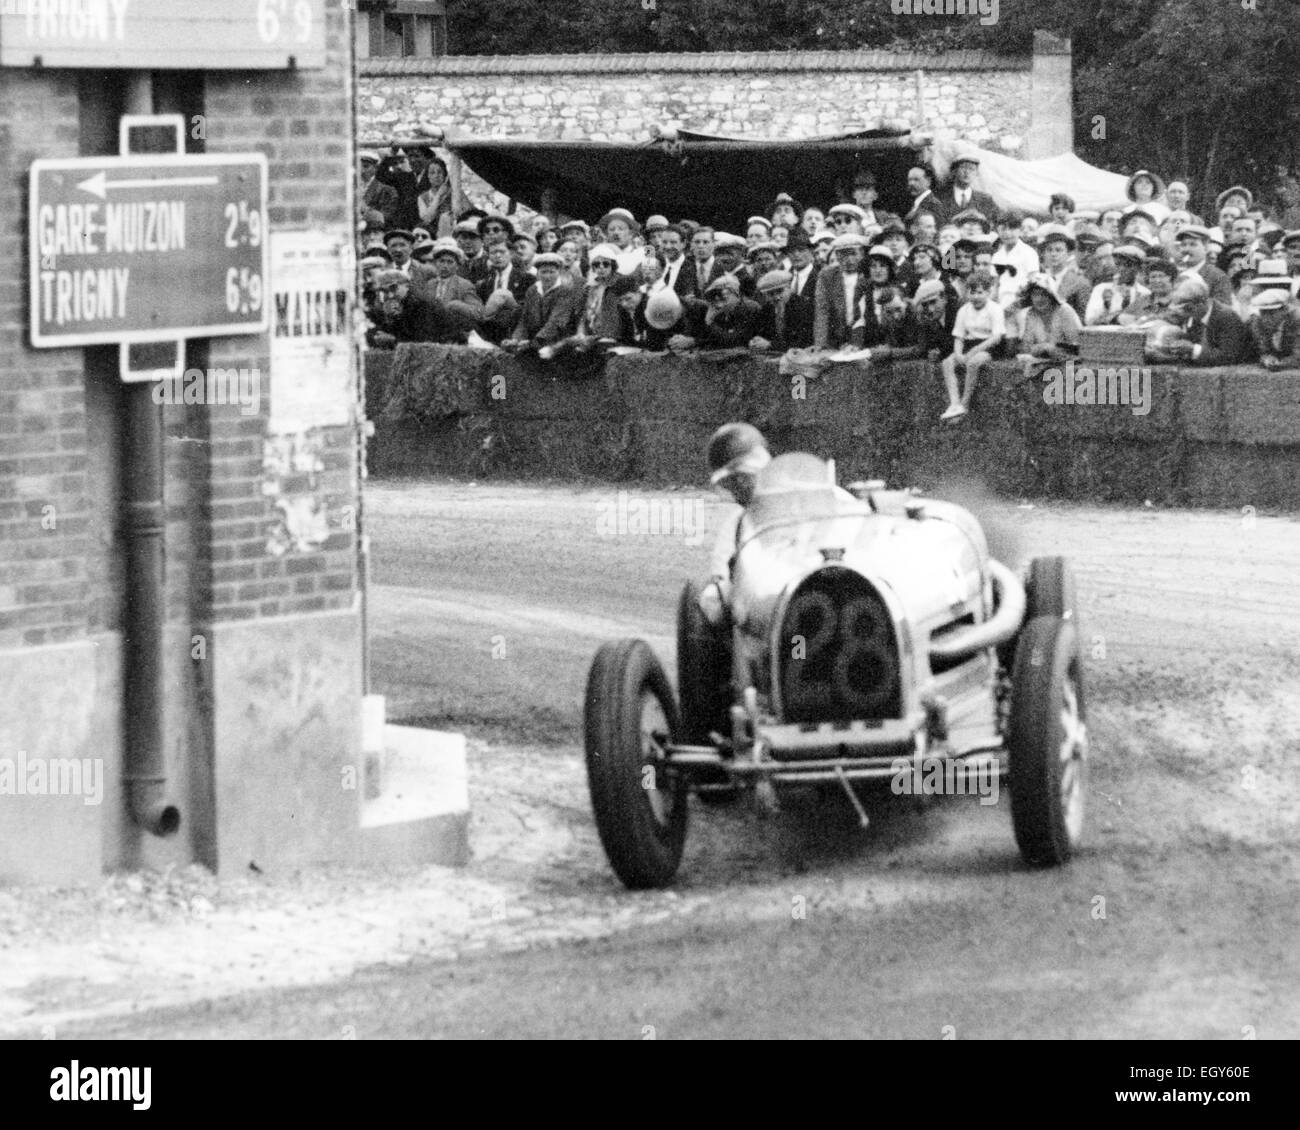 1932 FRENCH GRAND PRIX  Bugatti T54 No 28 riven by both Earl Howe and Hugh Hamilton during the race - Stock Image